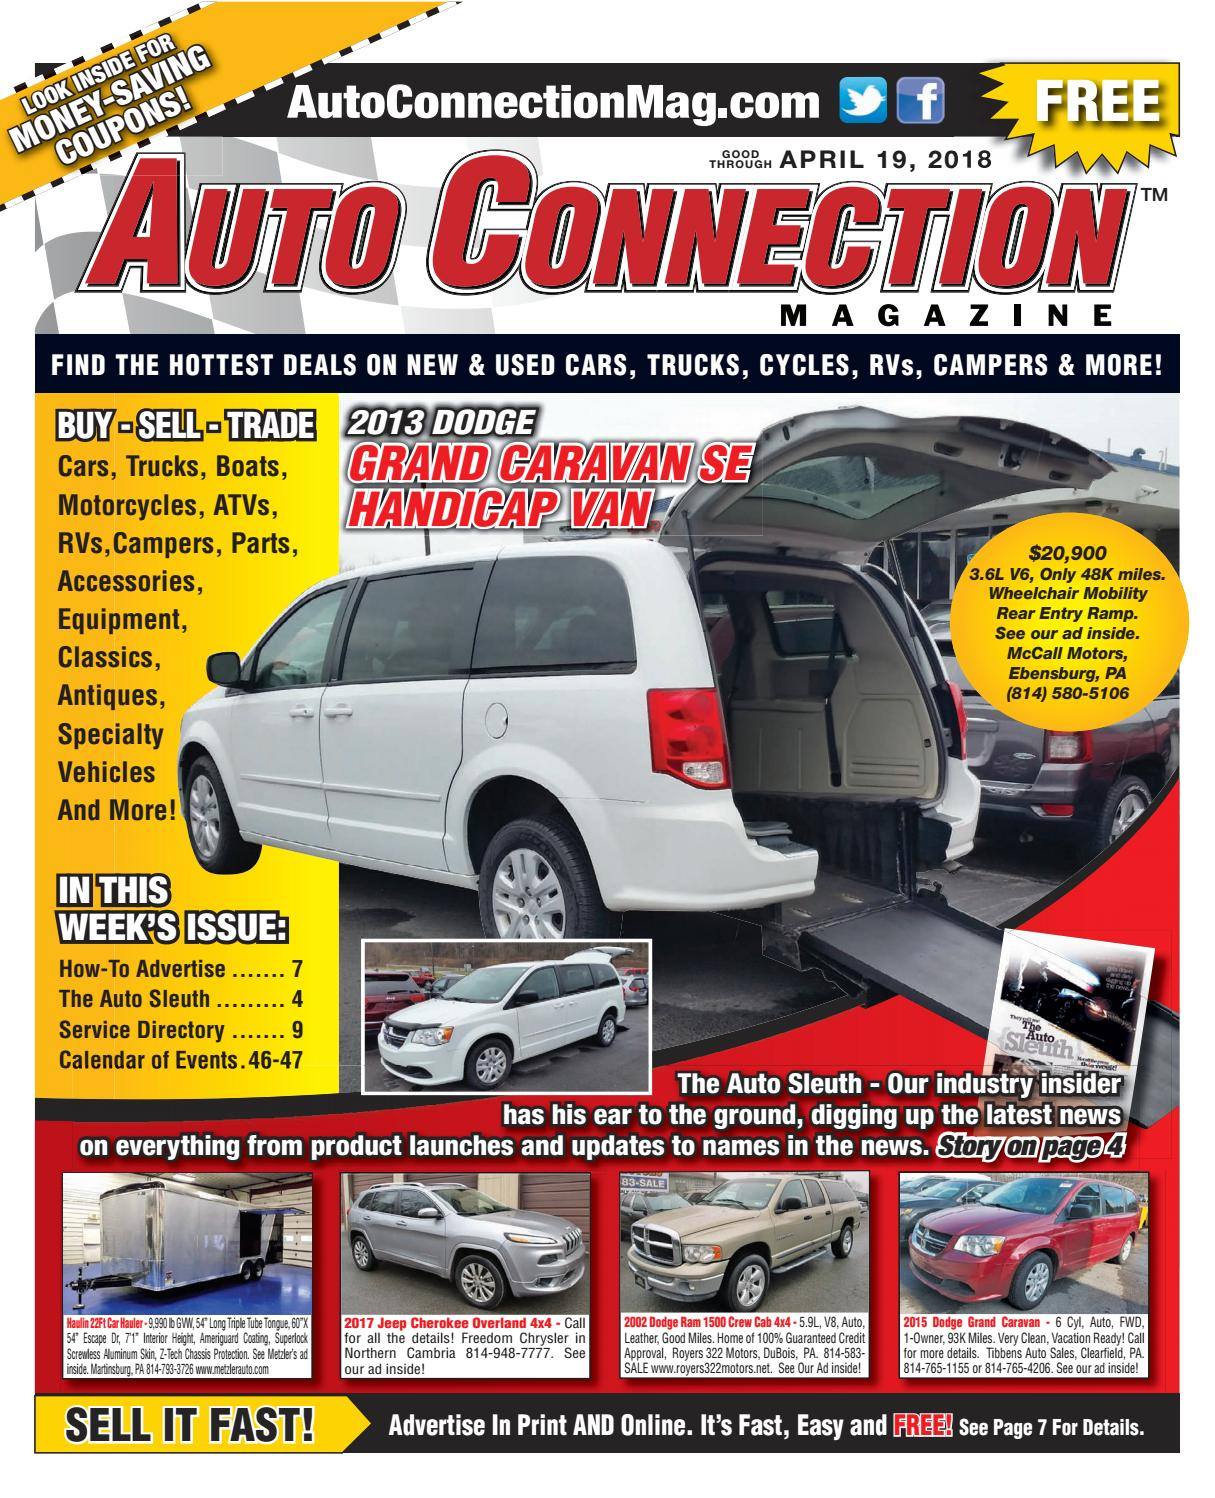 04 19 18 Auto Connection Magazine By Auto Connection